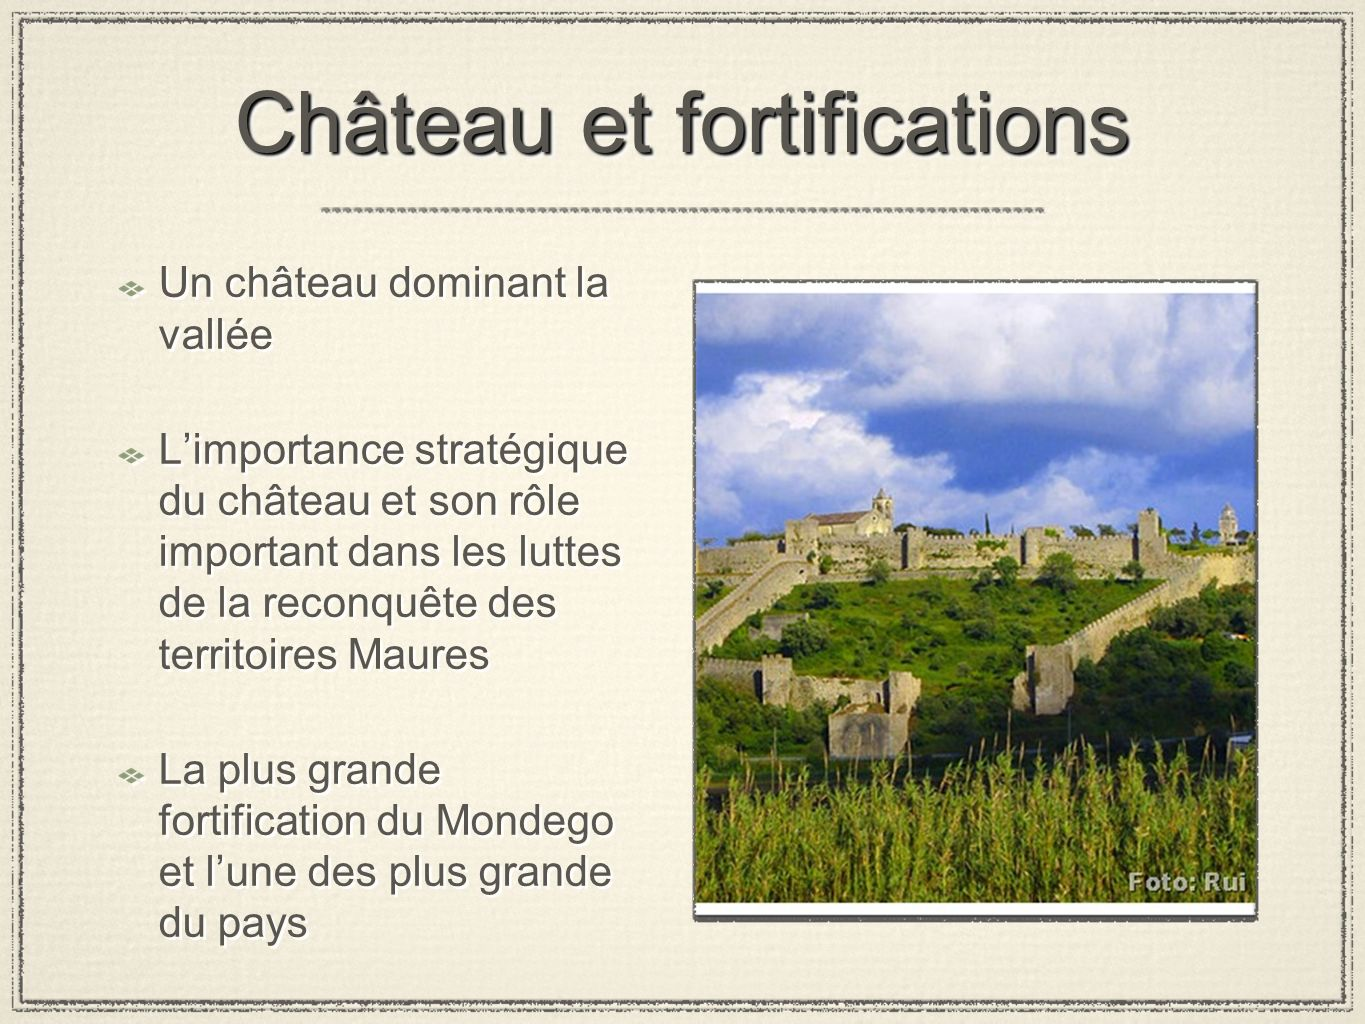 Château et fortifications